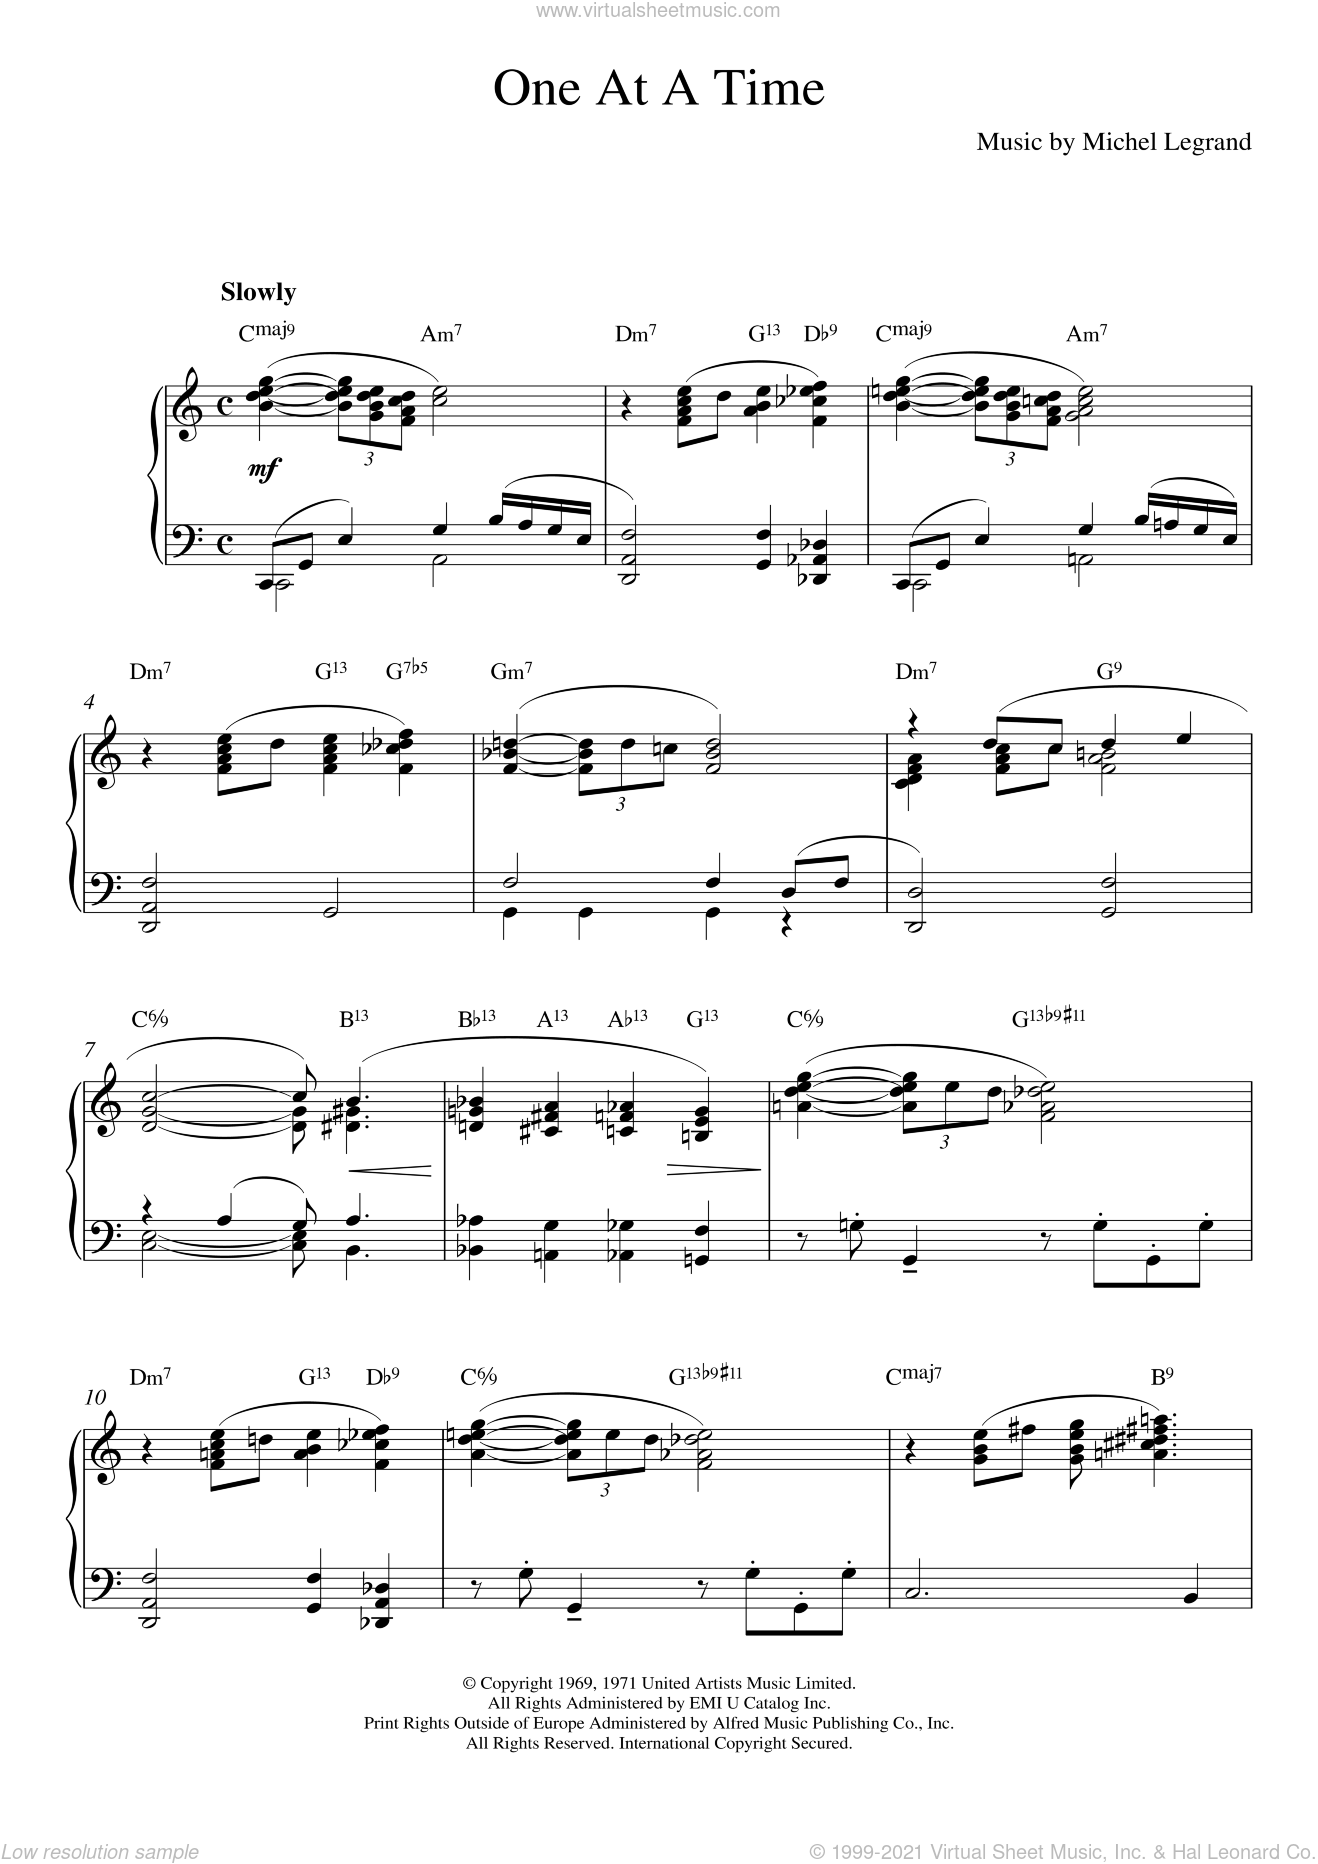 One At A Time sheet music for piano solo by Michel LeGrand, Alan Bergman and Marilyn Bergman, intermediate skill level